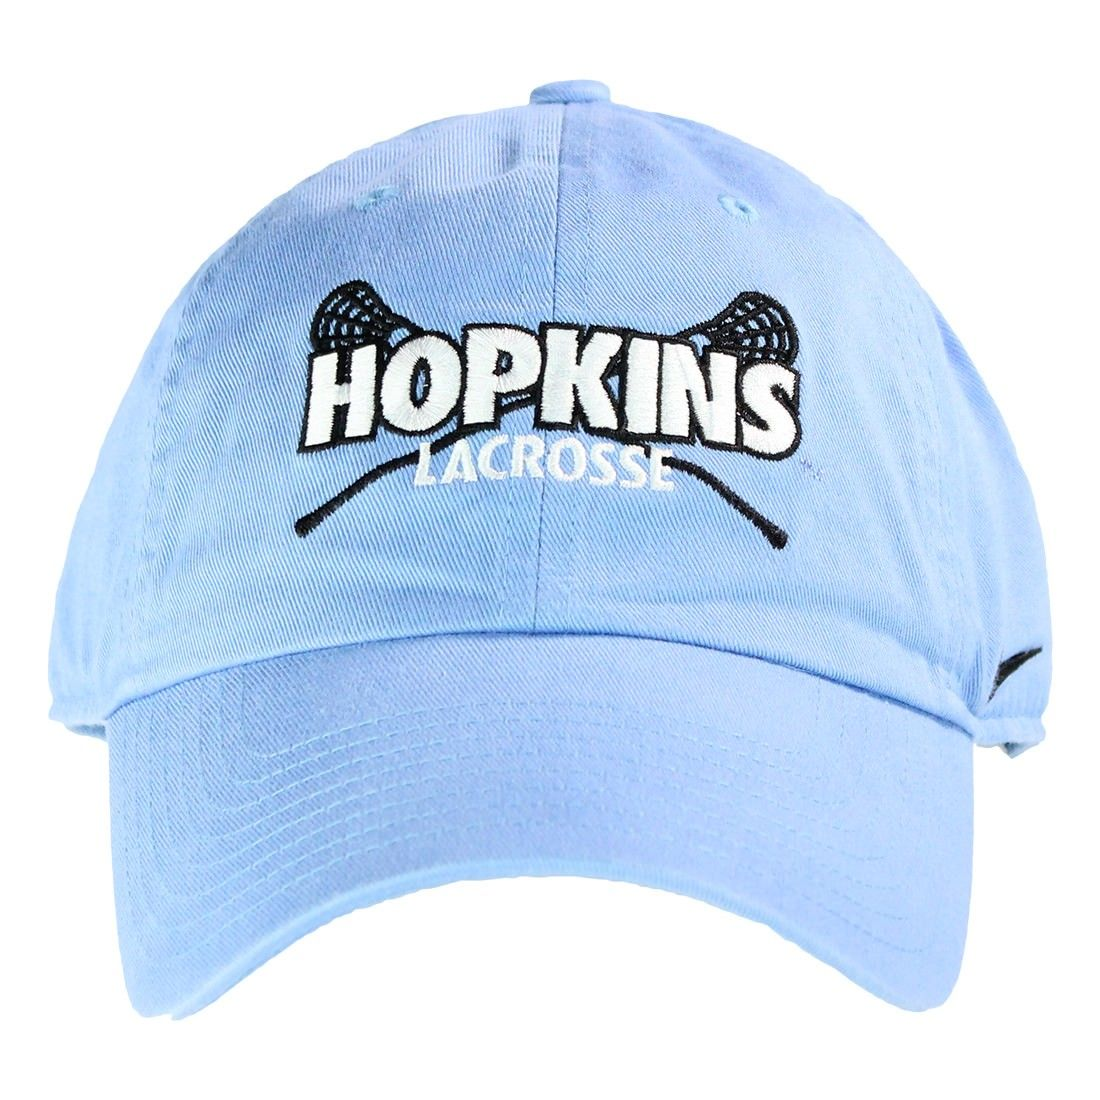 3faf51fbe Johns Hopkins Nike Campus Hat | LAX | Hats, College hats, Lacrosse